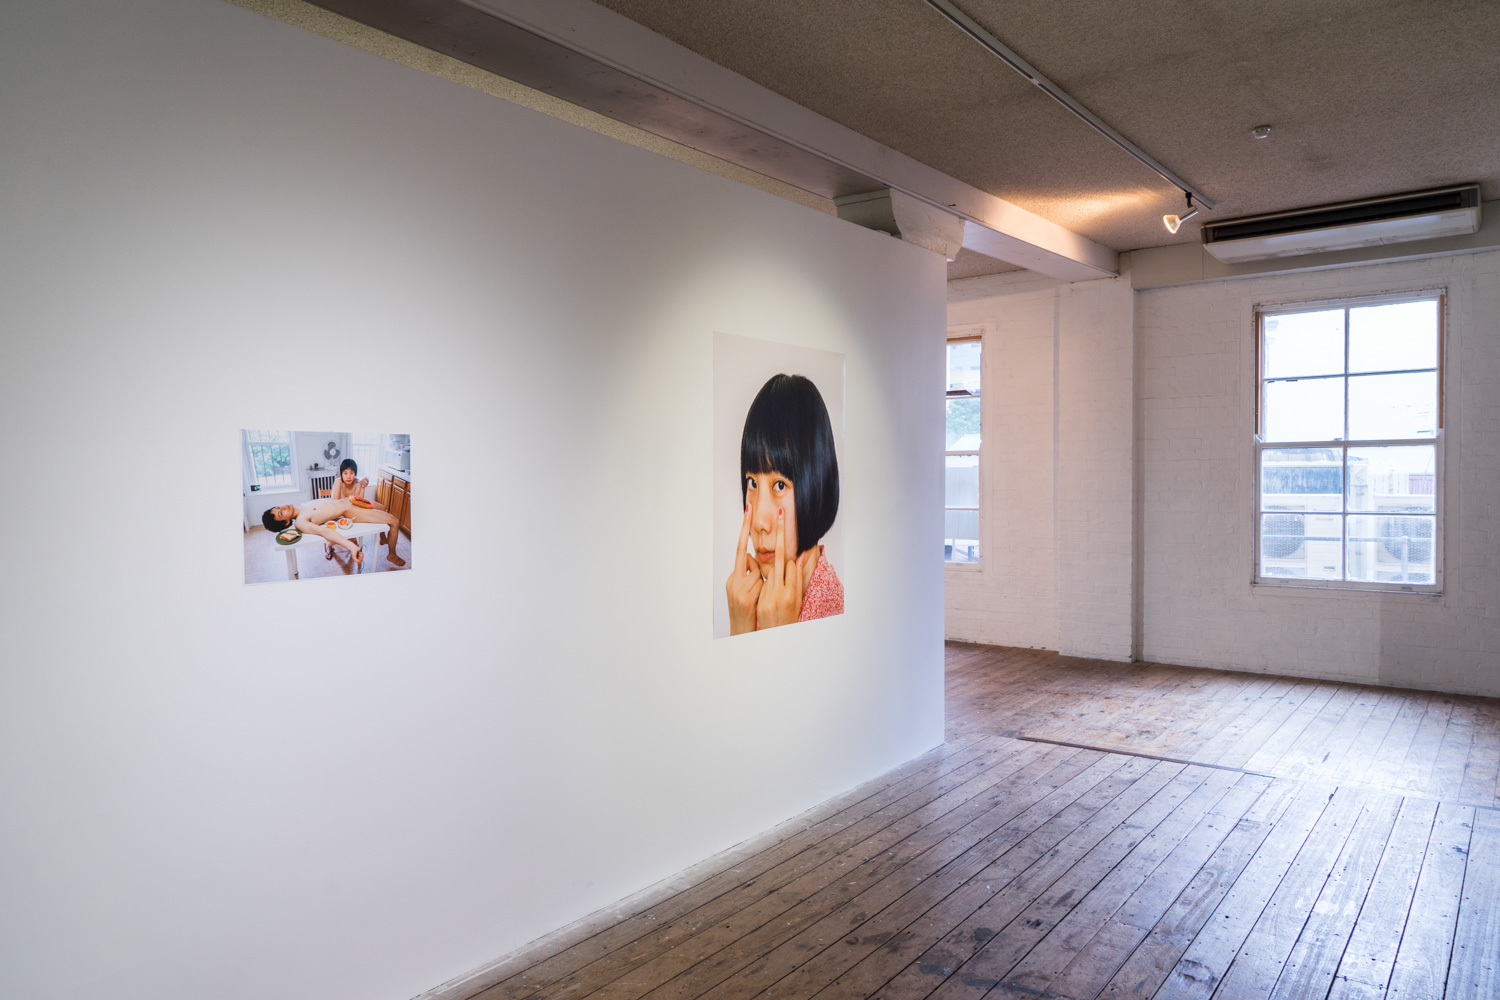 Pixy Liao, various work, installation view,  Disobedient Daughters,  2018, Metro Arts, Brisbane. Photo: Louis Lim.